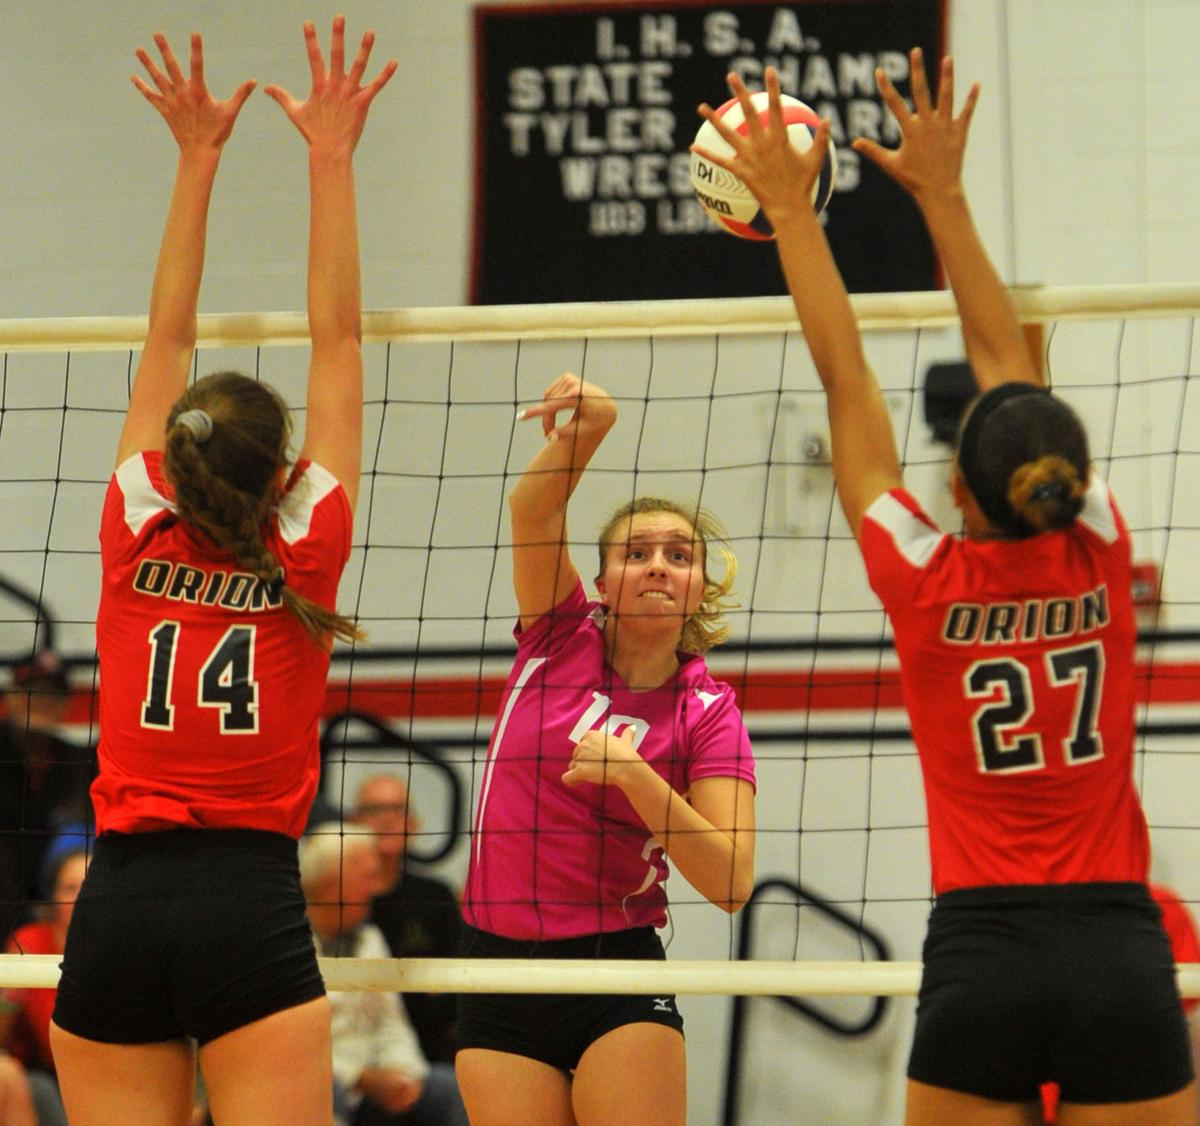 Orion vs Fulton volleyball.